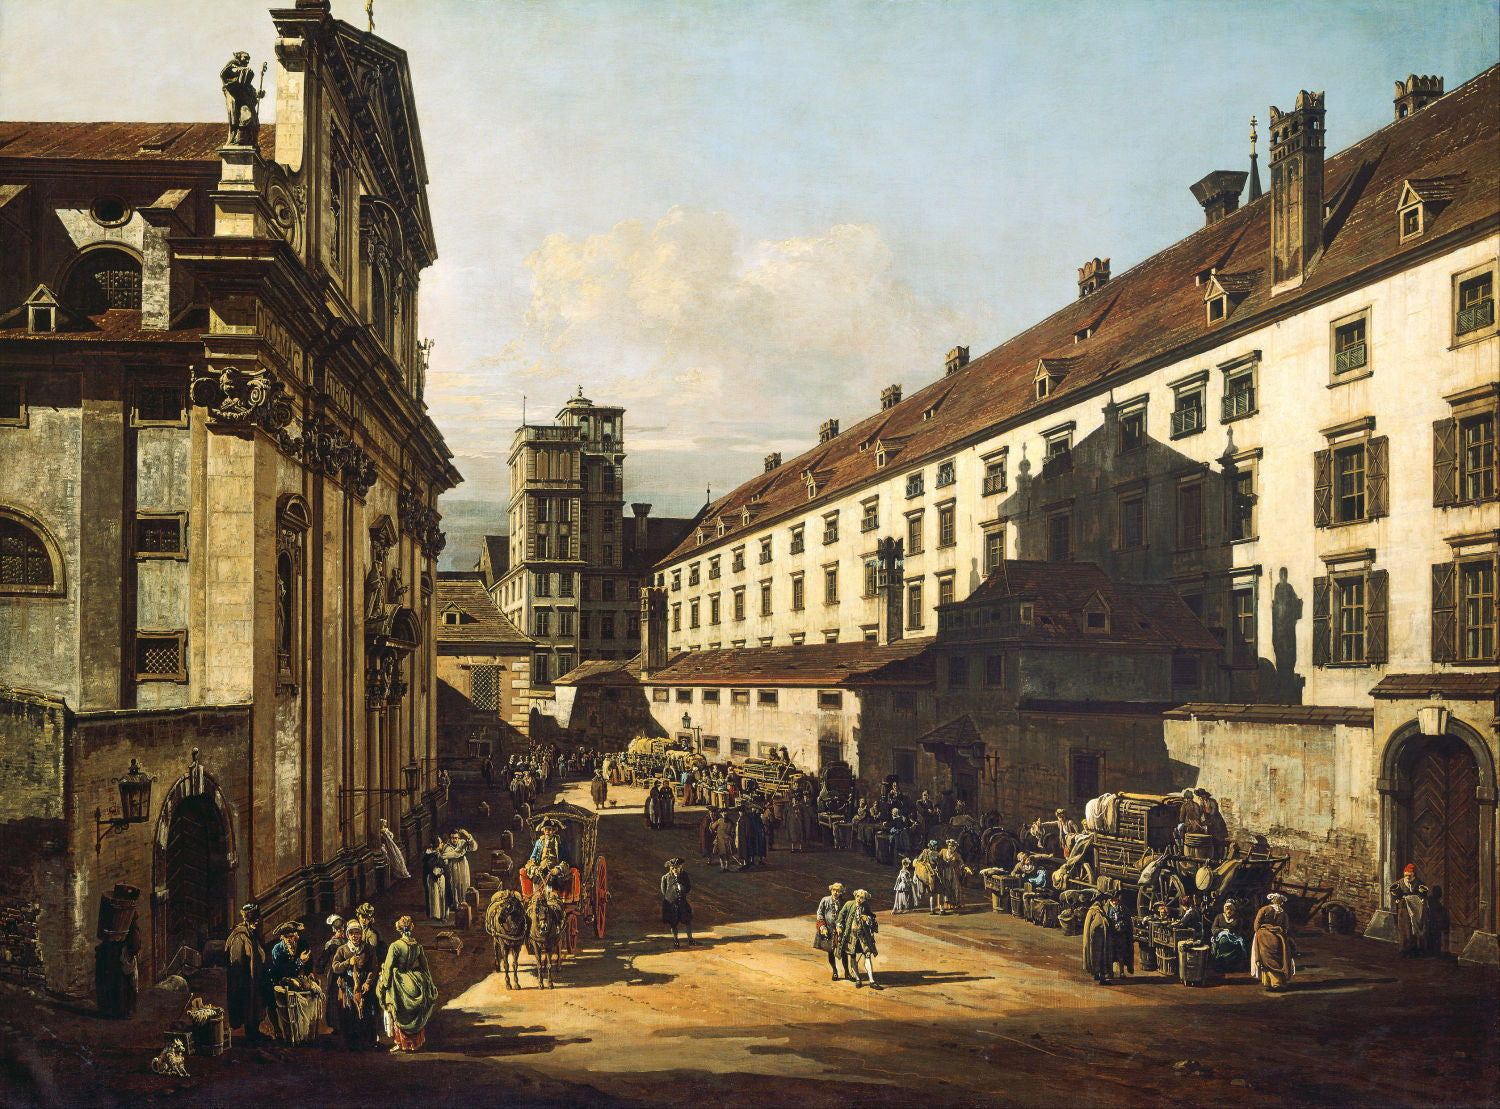 Bernardo Bellotto | Buy Posters, Frames, Canvas, Digital Art & Large Size Prints Of The Famous Old Master's Artworks